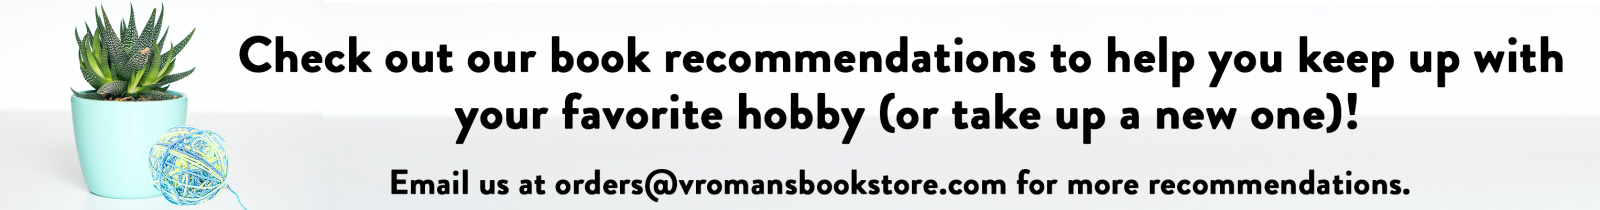 Check out our book recommendations to help you keep up with  your favorite hobby (or take up a new one)! Email us at orders@vromansbookstore.com for more recommendations.